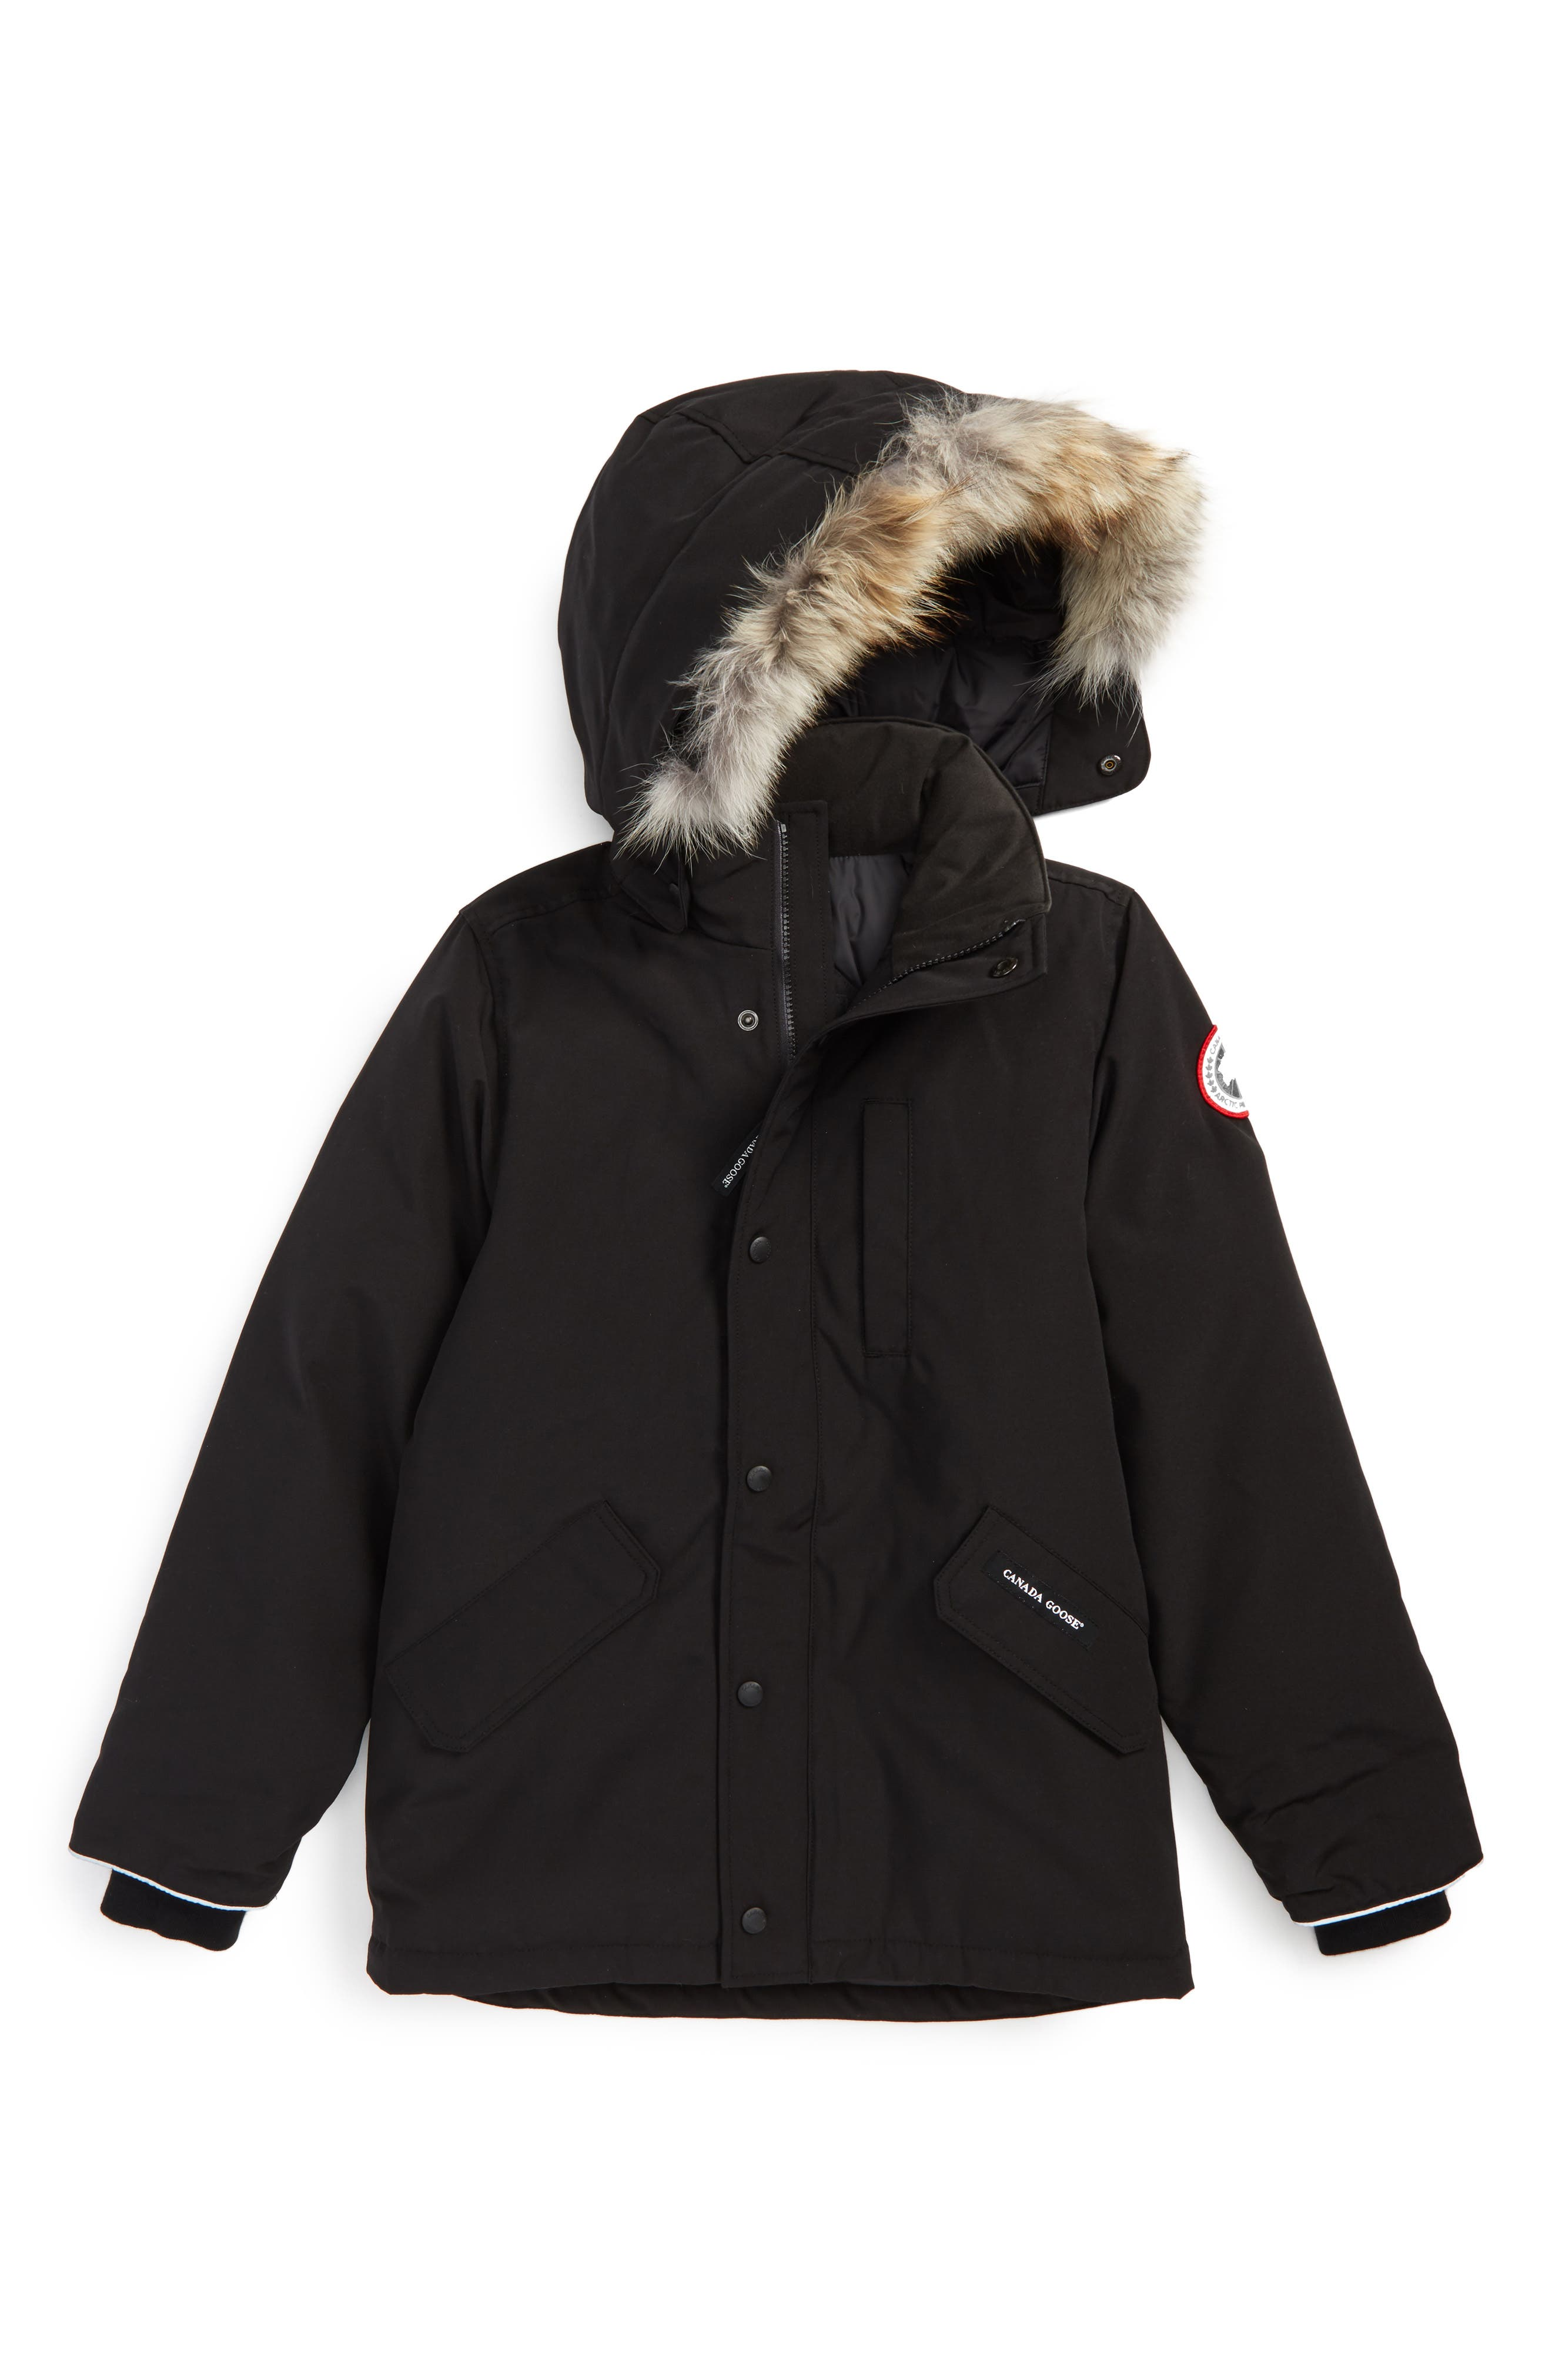 Main Image - Canada Goose 'Logan' Down Parka with Genuine Coyote Fur Trim (Little Kid & Big Kid)